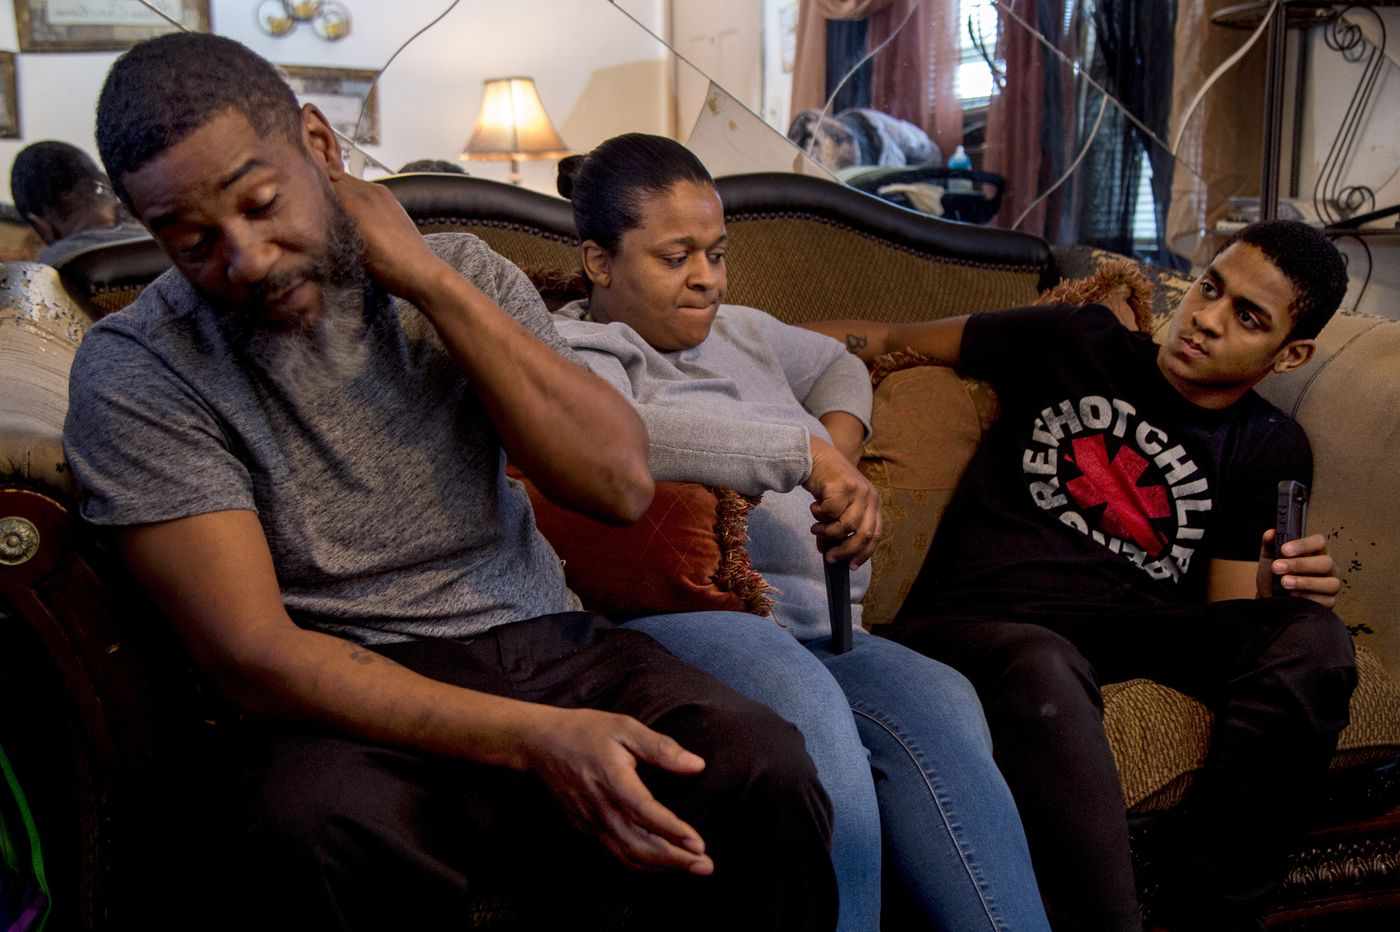 Family desperately searching for wheelchair-accessible housing after son is shot | Helen Ubiñas